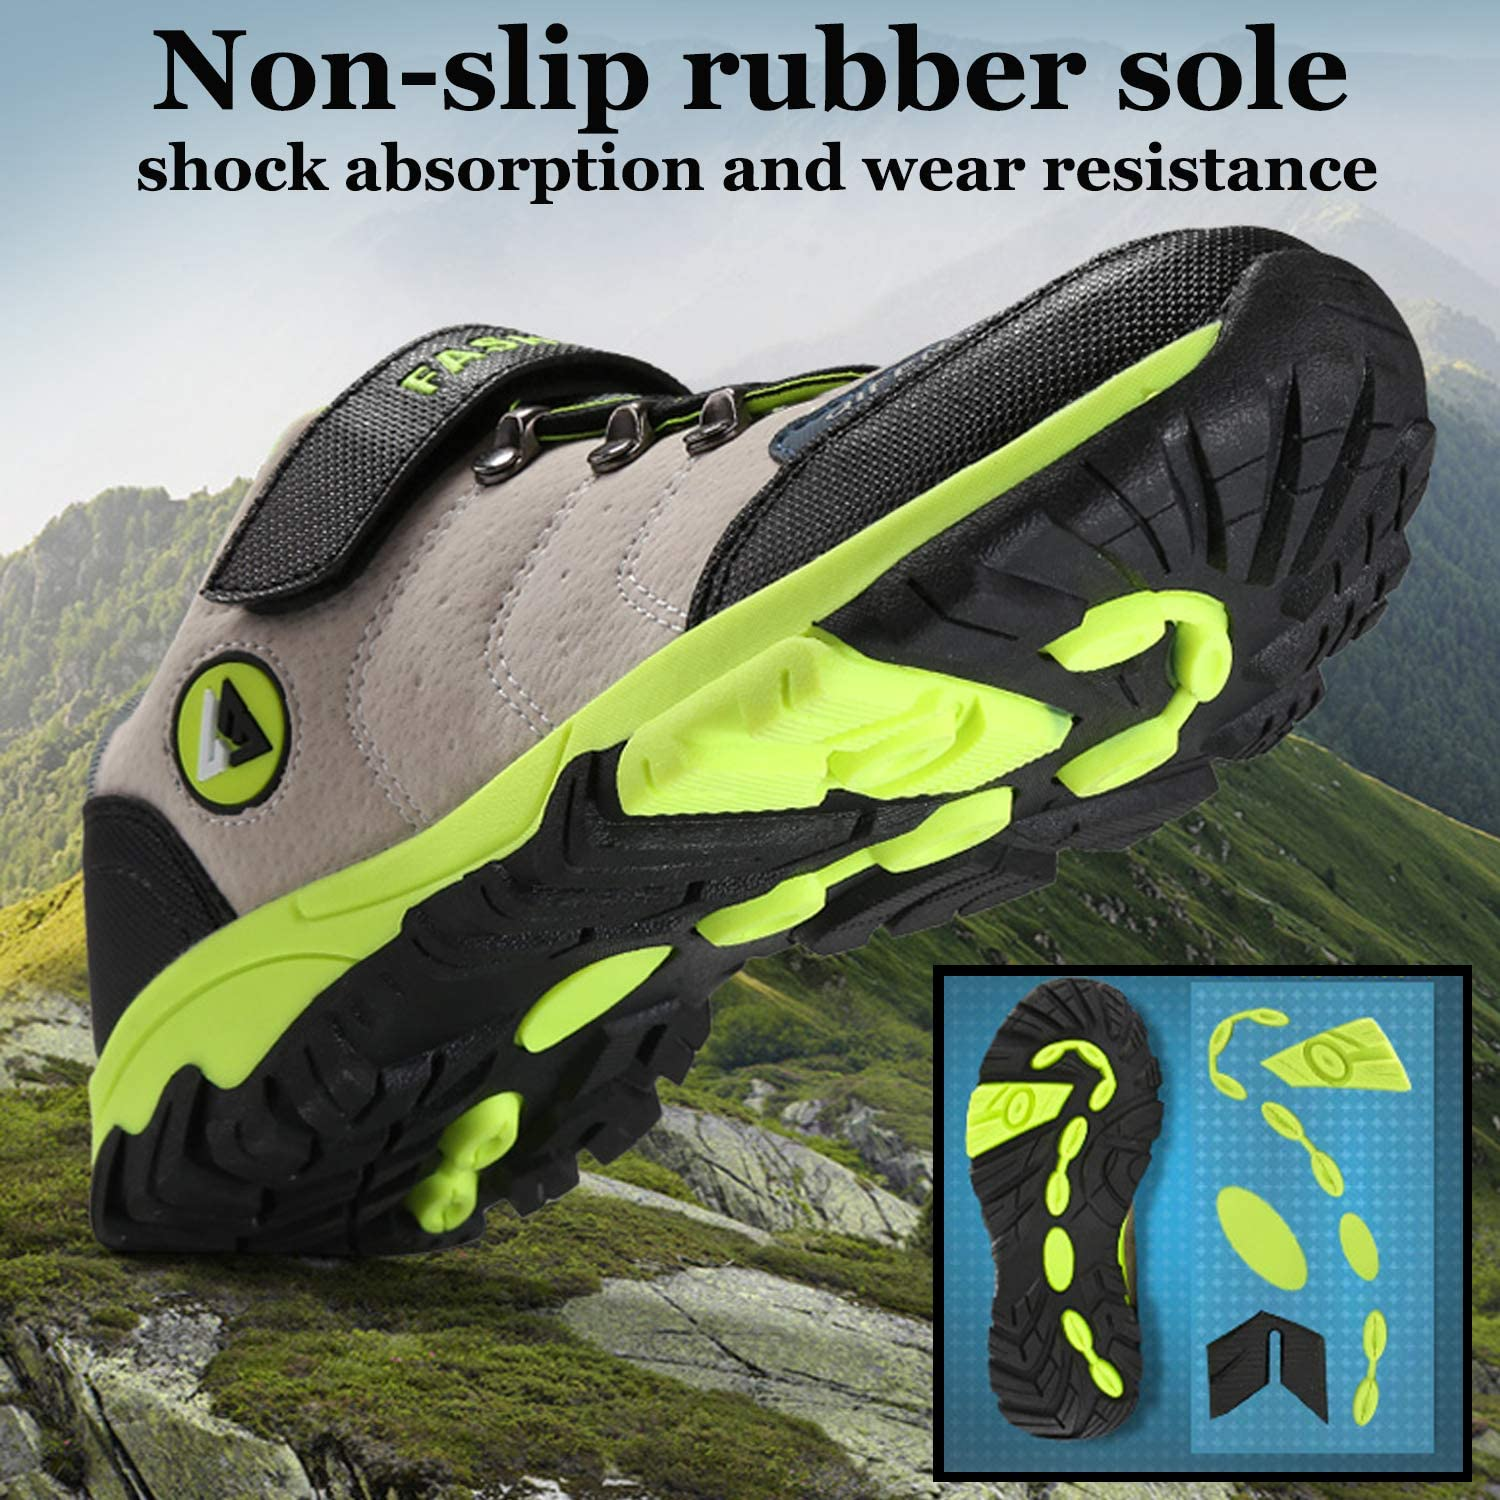 Unitysow Kids Shoes Boys Hiking Boots Girls Trekking Climbing Outdoor Shoes Lightweight Waterproof Childrens Walking Camping Shoes Unisex Sneakers